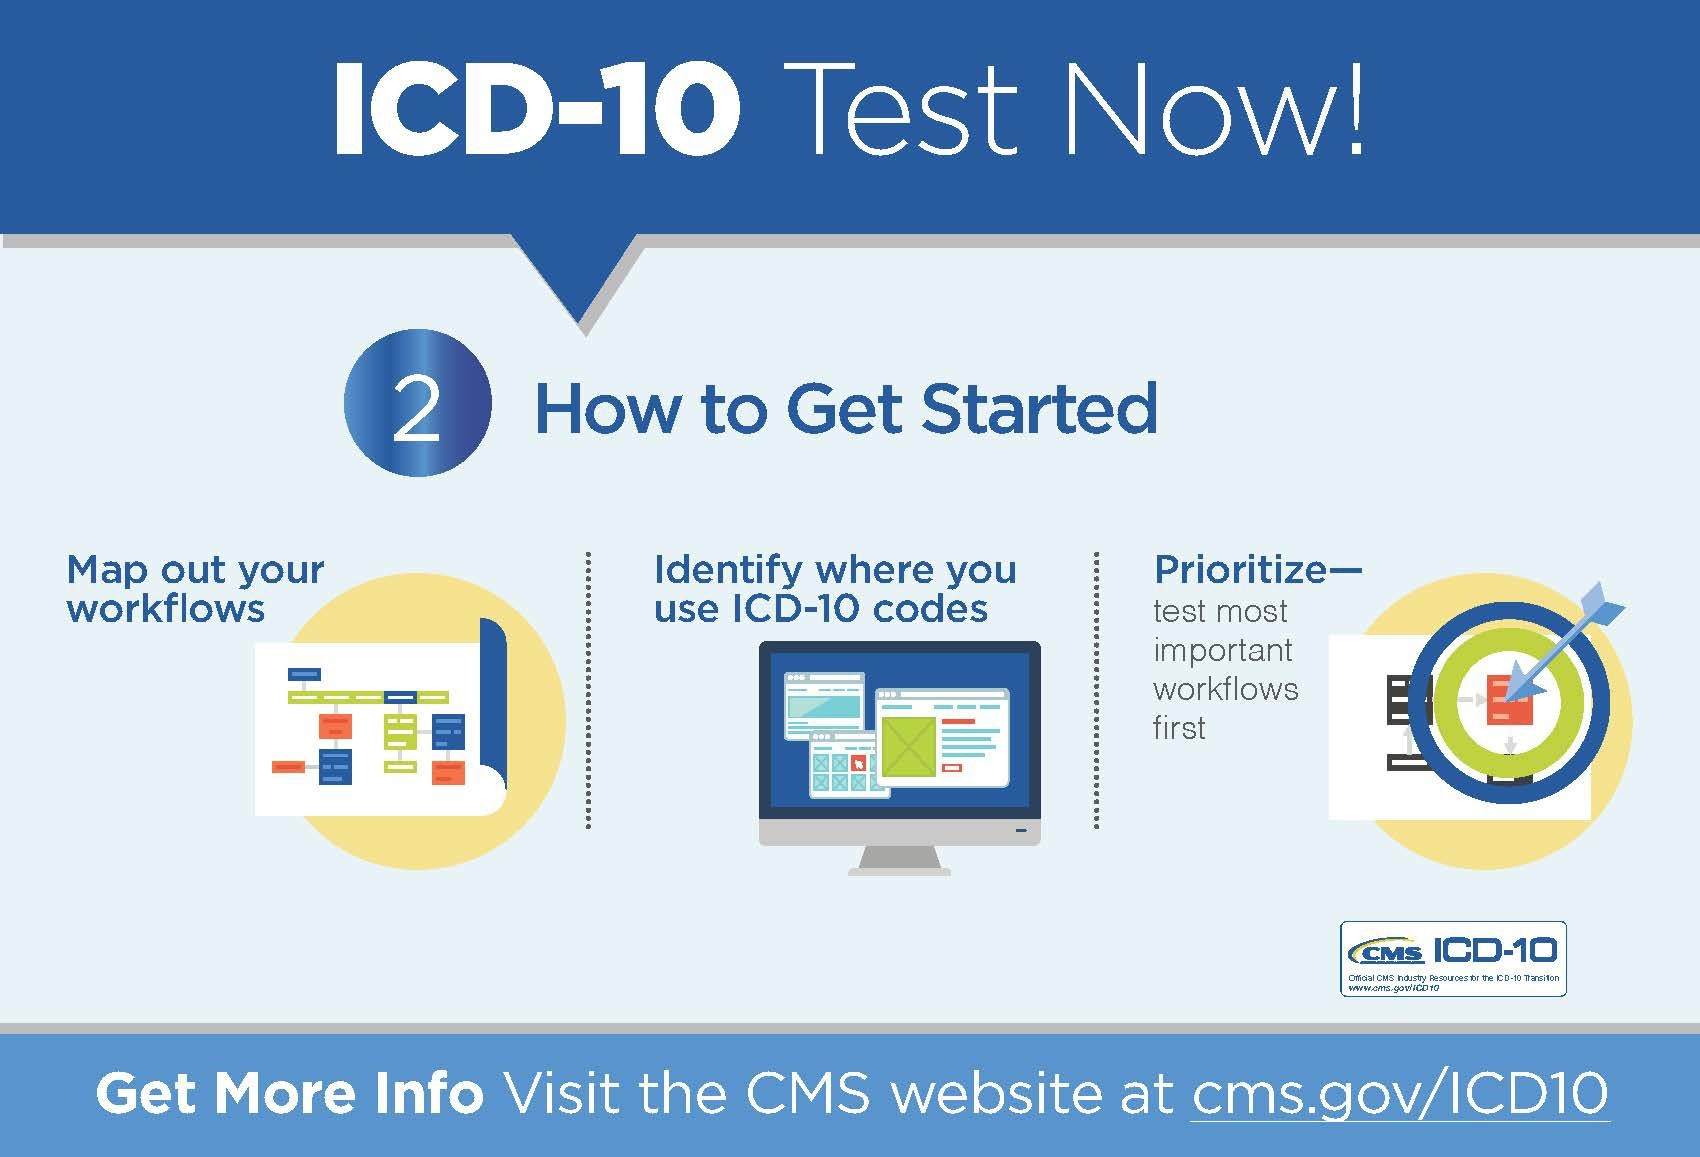 icd-10-how-to-get-started